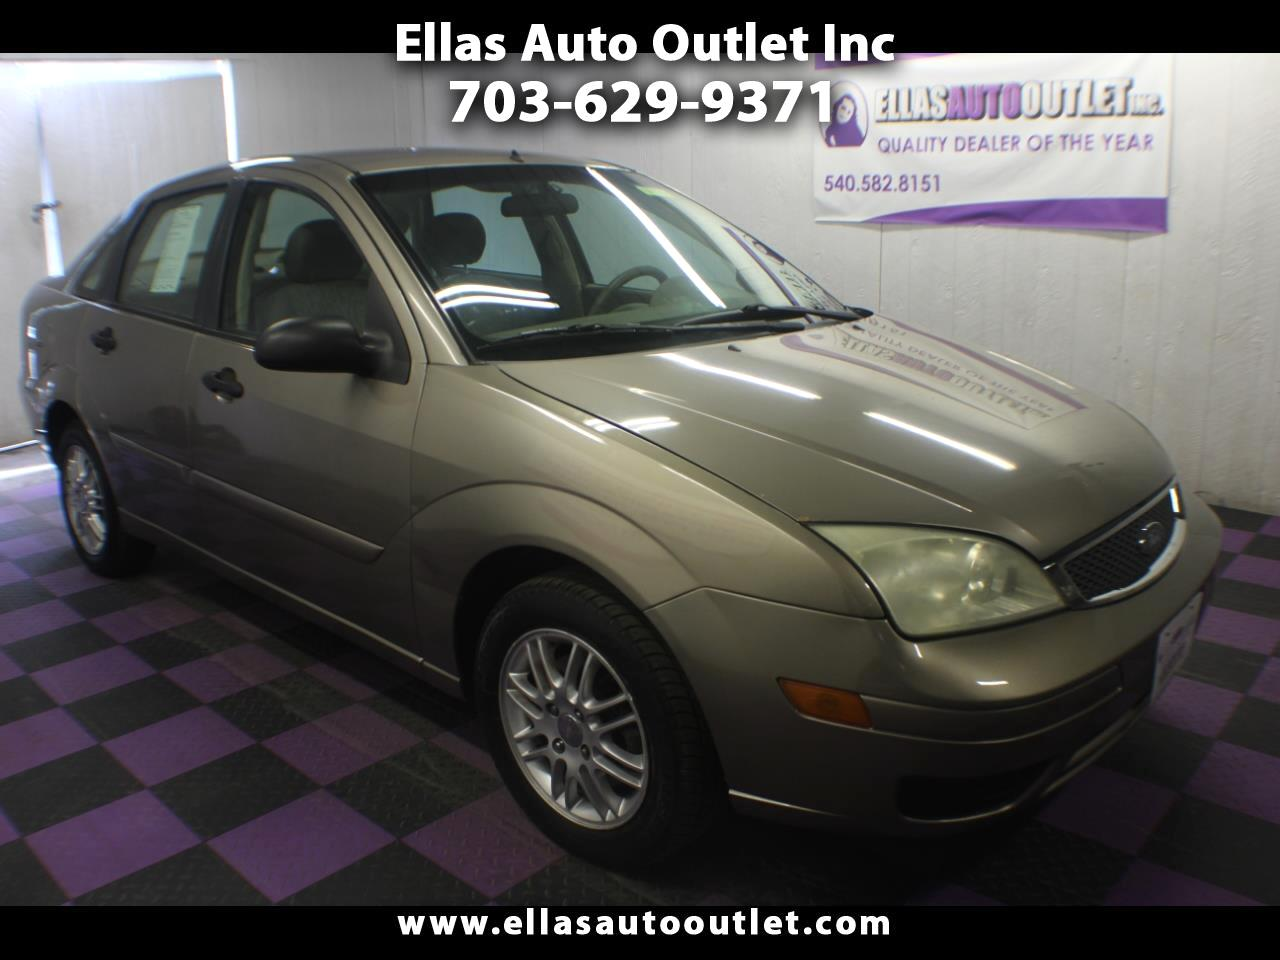 2005 Ford Focus 4dr Sdn ZX4 SES